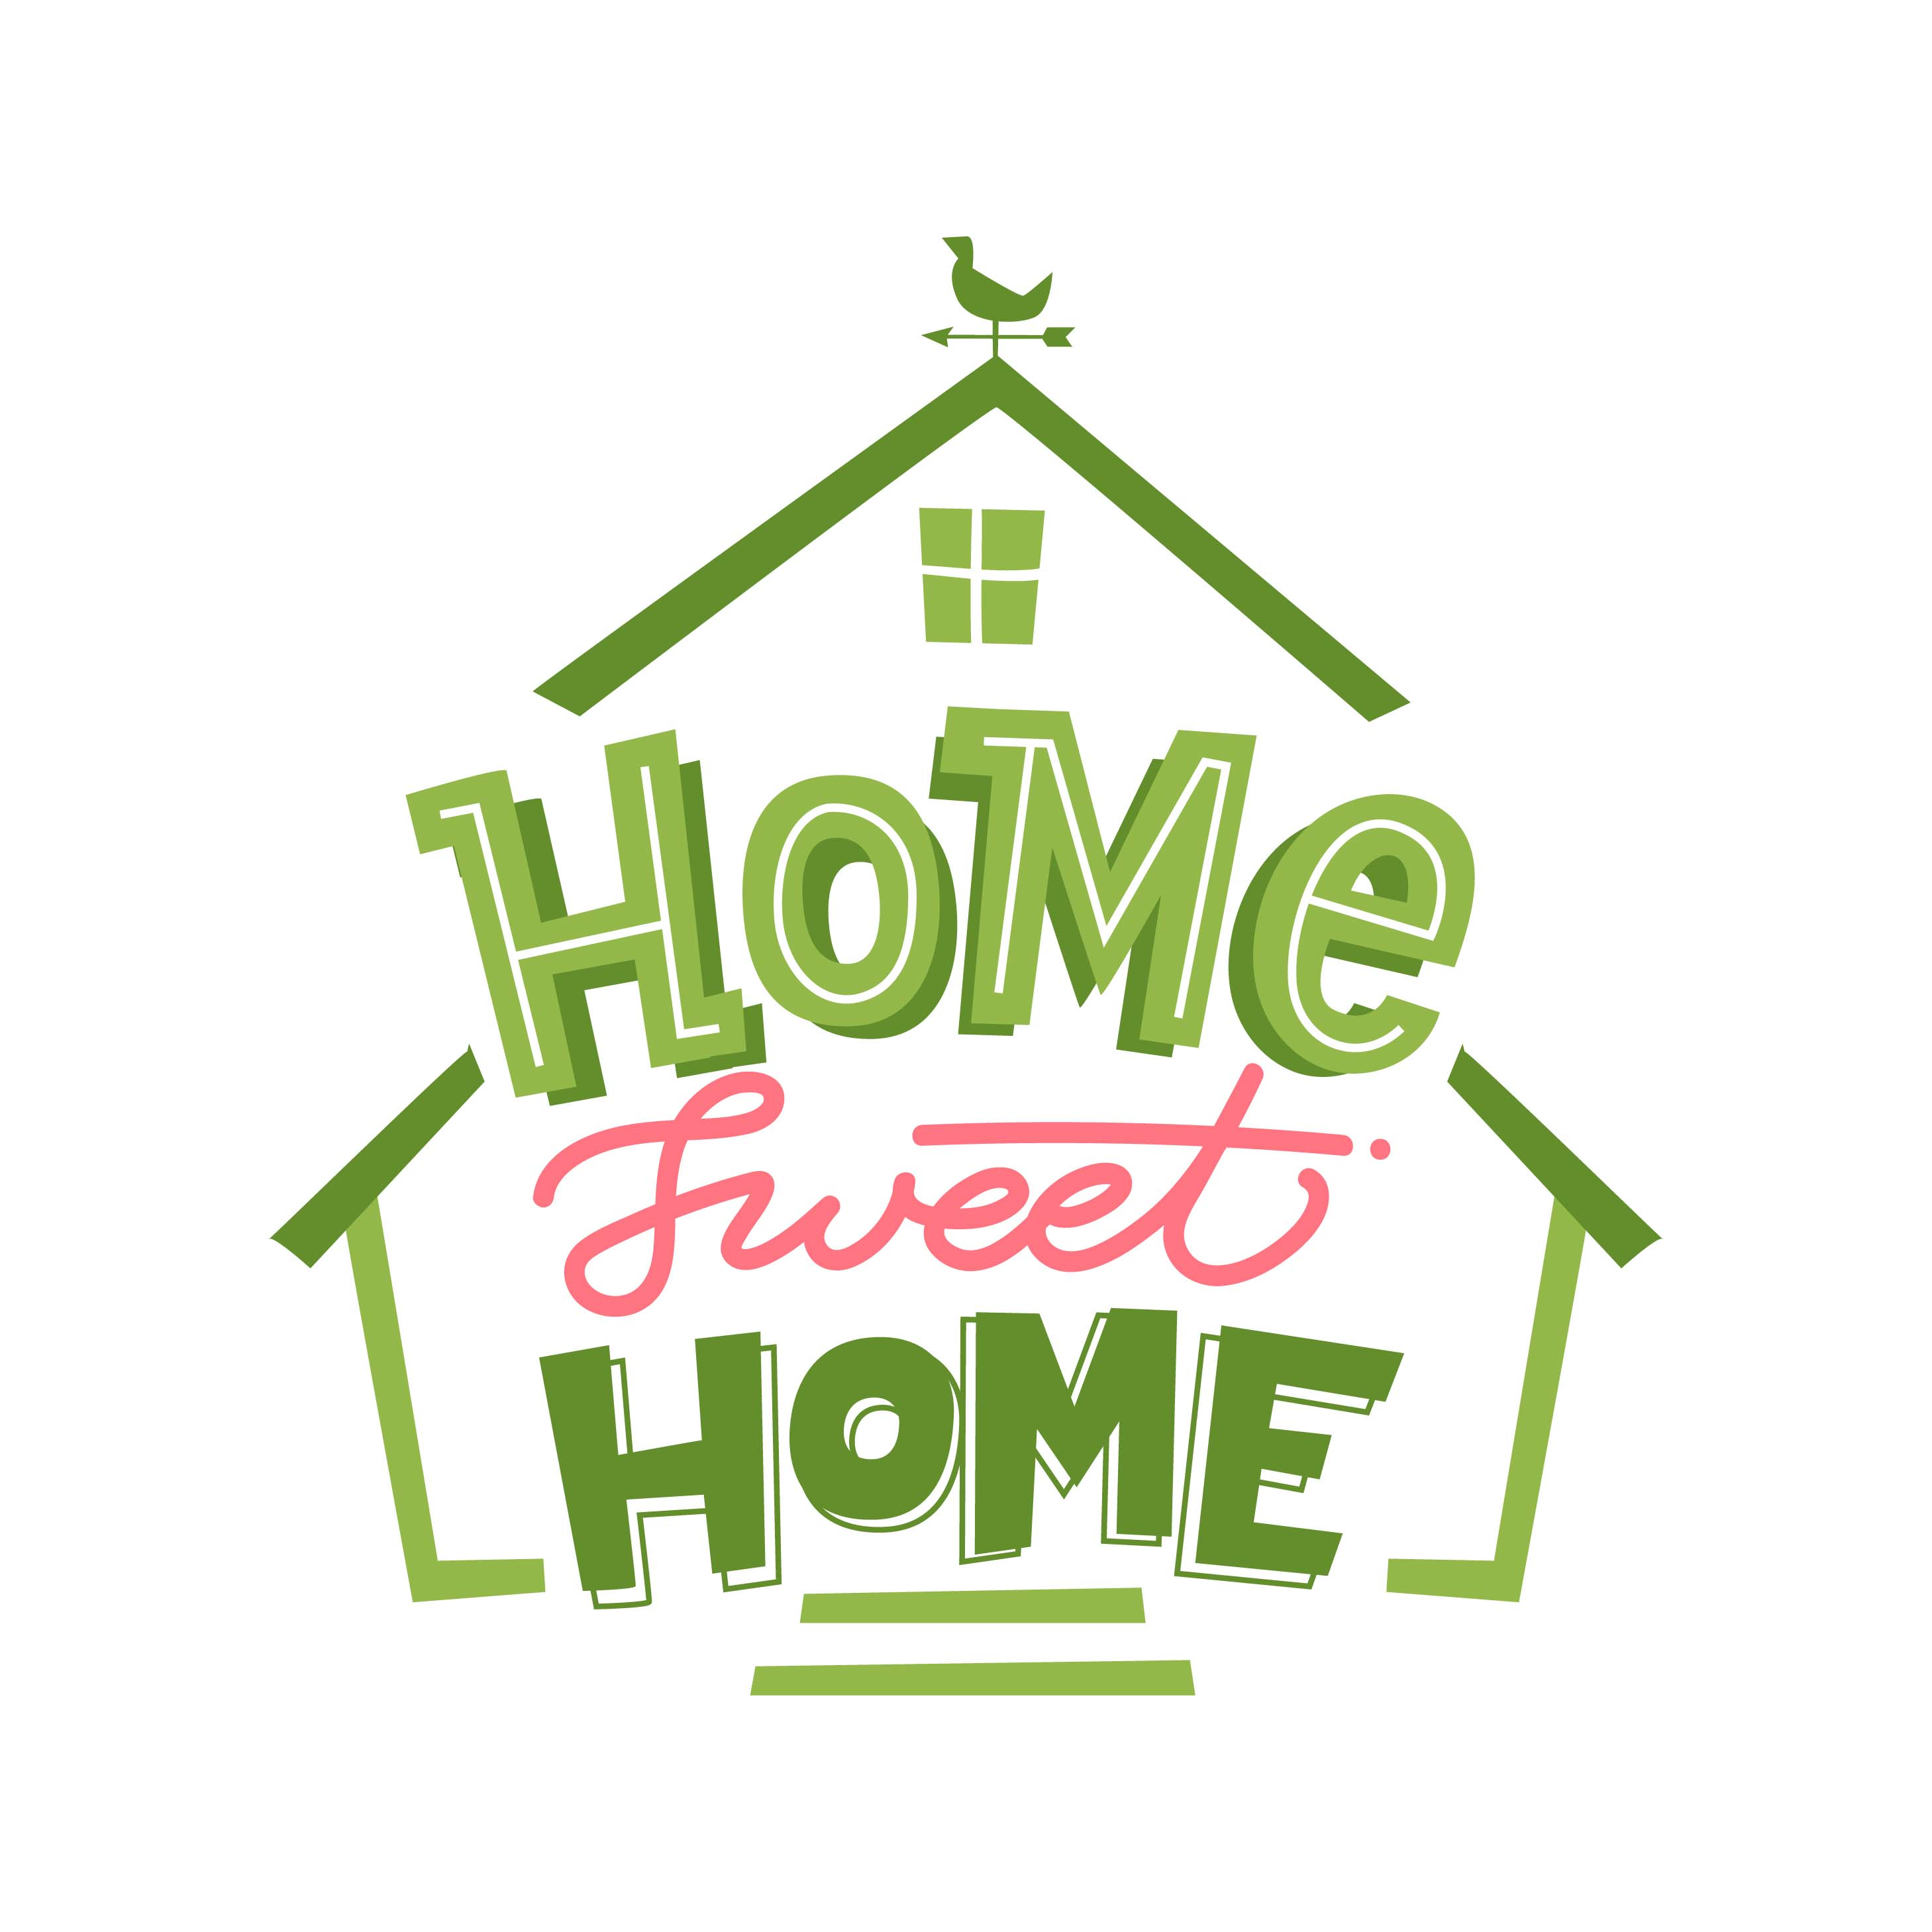 Home Sweet Home Lettering Layout - Download Free Vectors ...